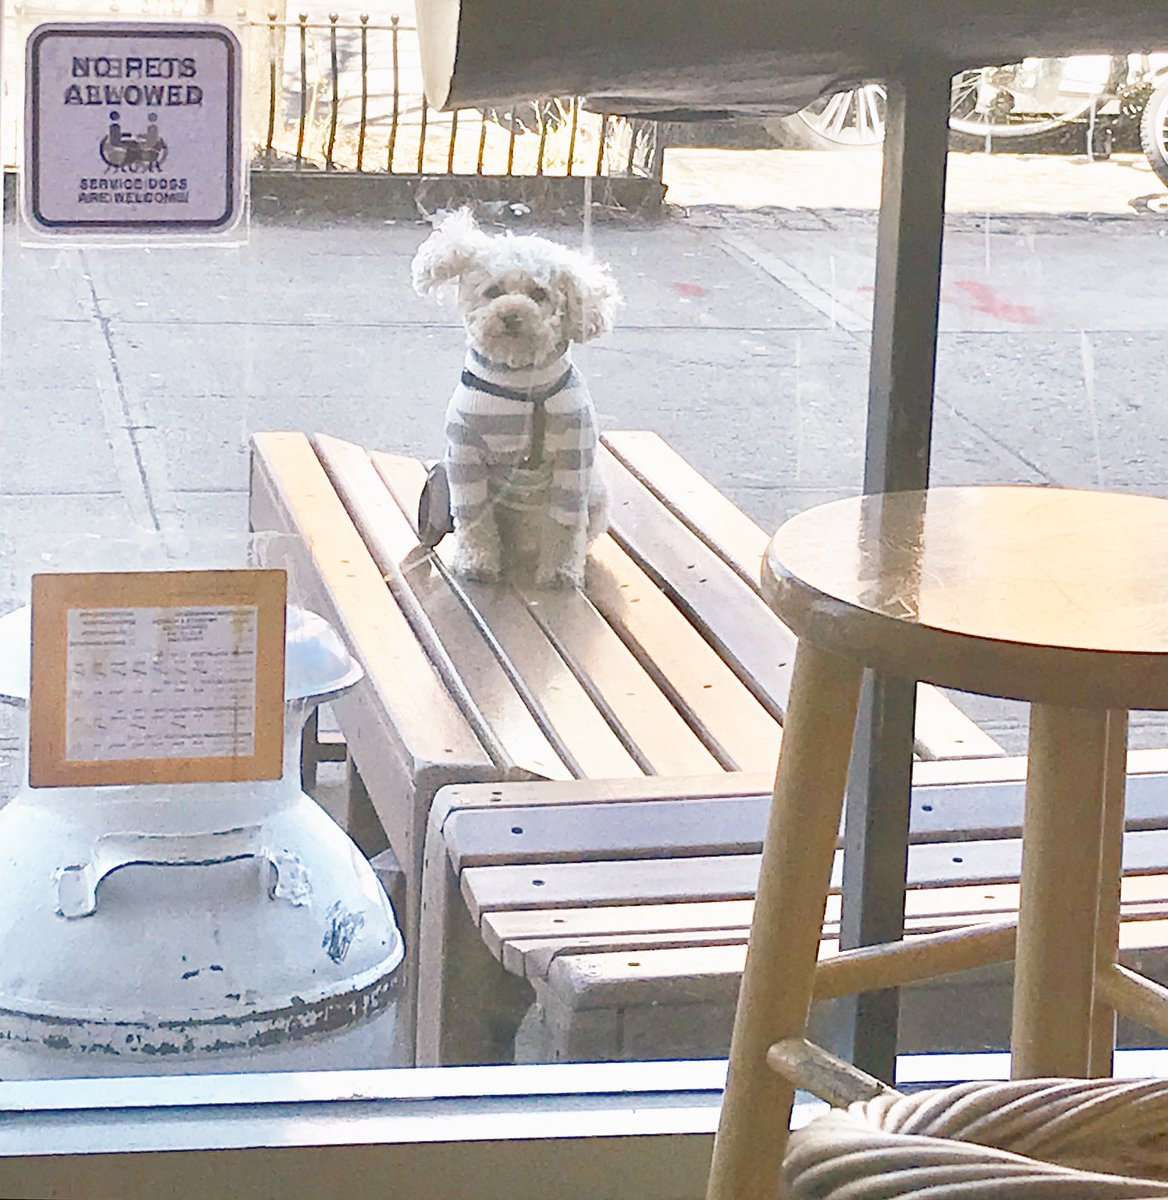 Oliver will not let a little wind compromise his security detail outside the #cofeeshop  #toypoodlepic.twitter.com/NU0RNMoaox